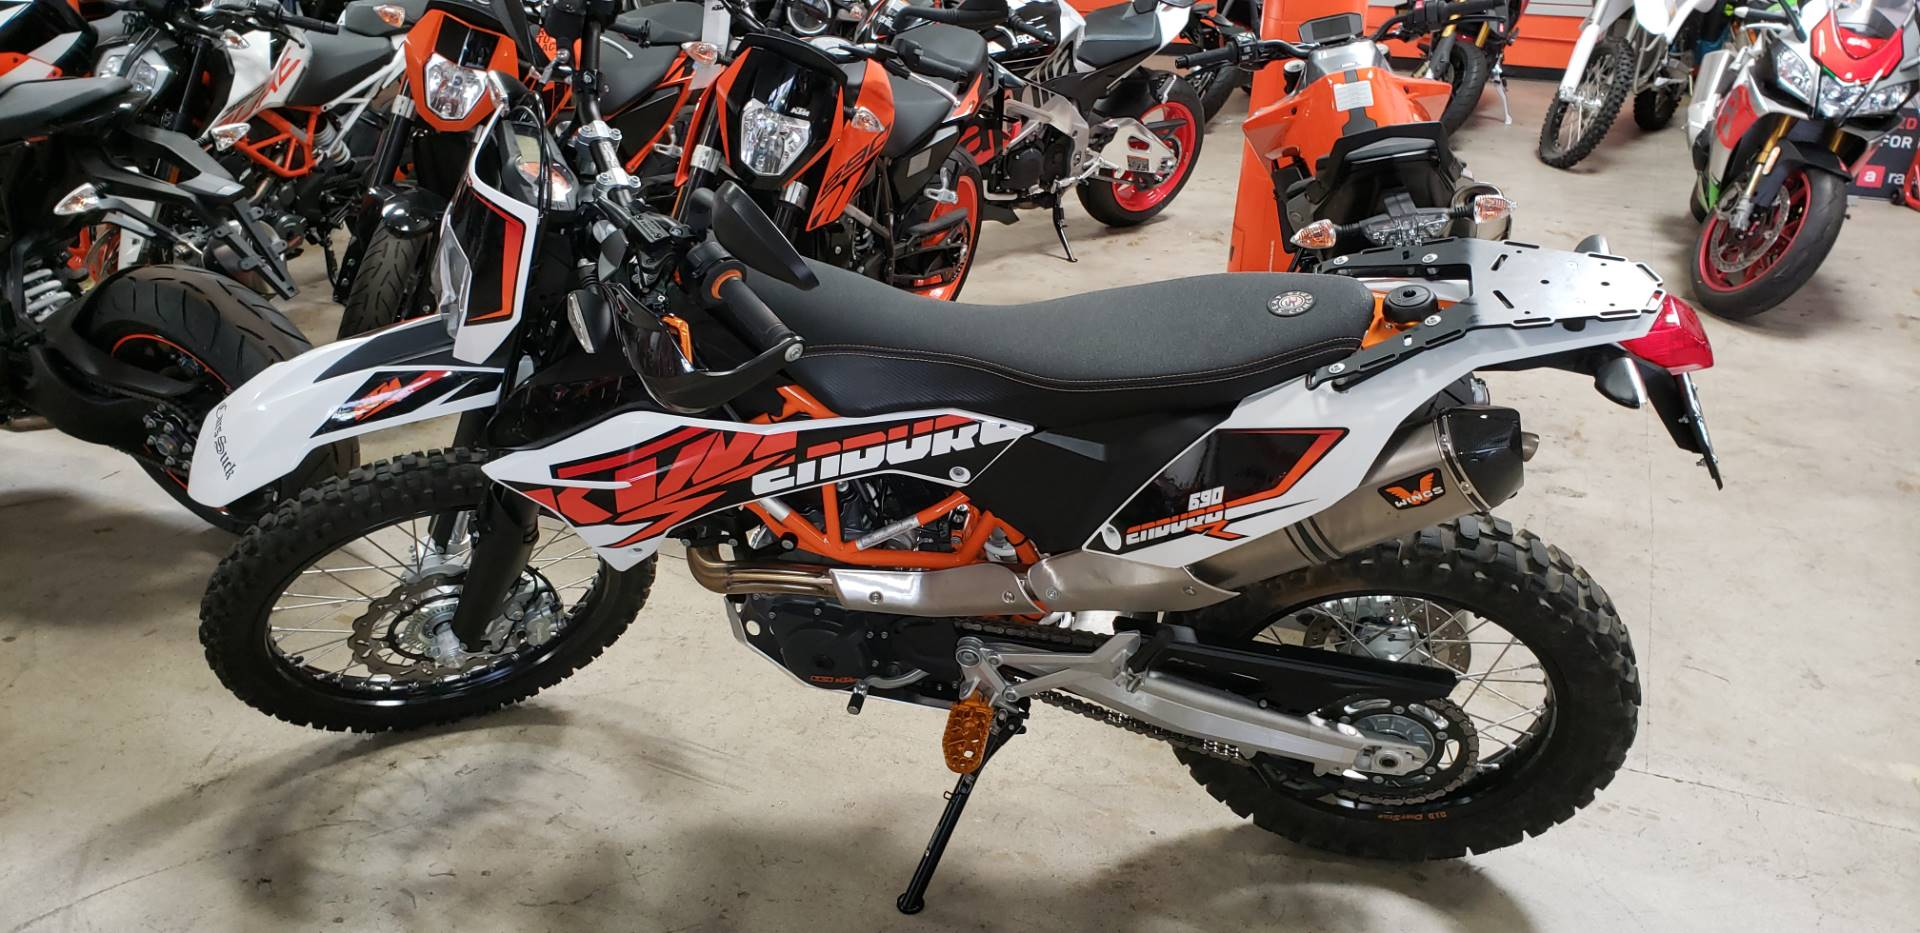 2015 KTM 690 ENDURO R in Orange, California - Photo 1